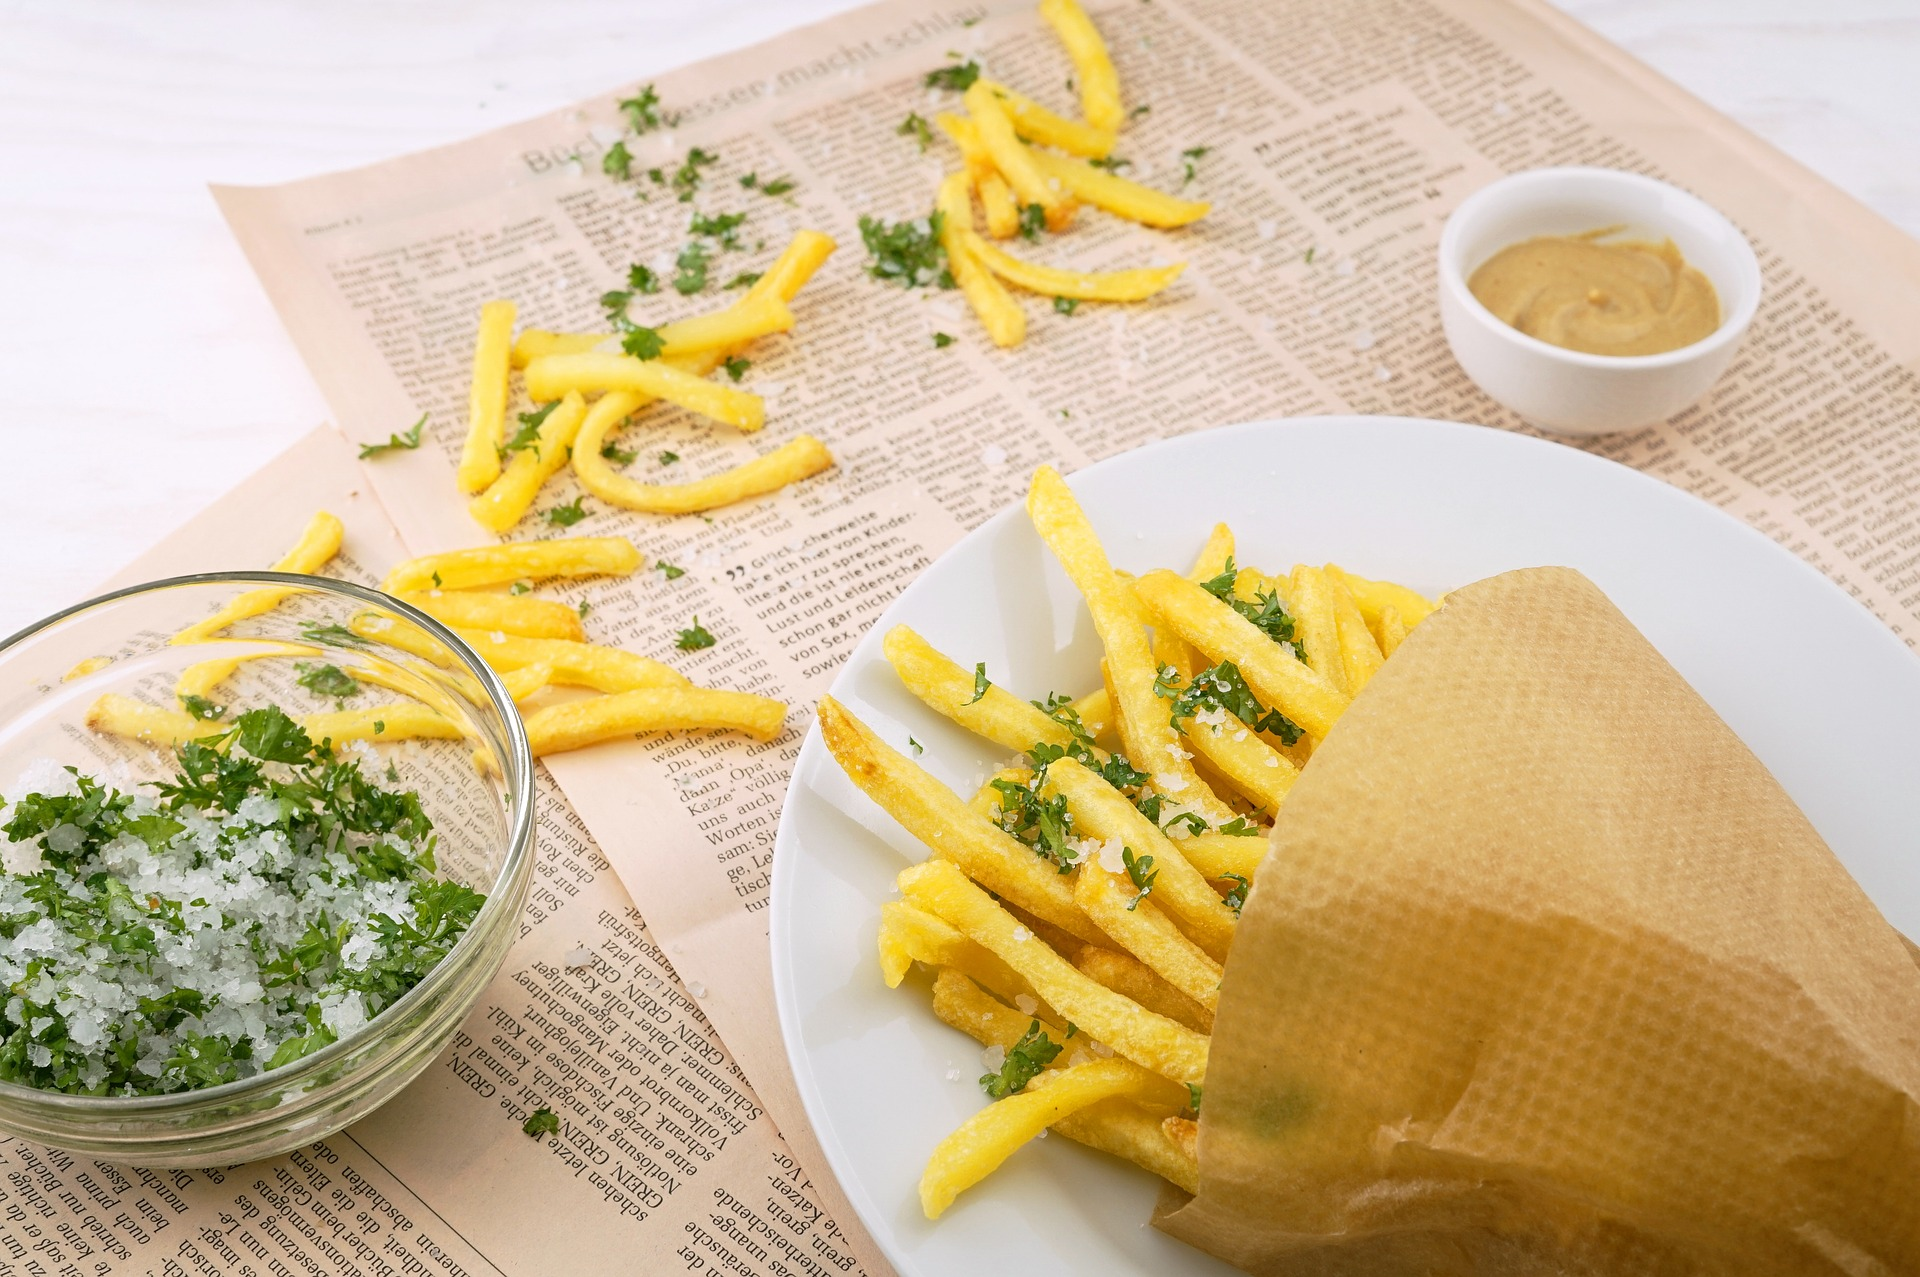 French fries with herbs